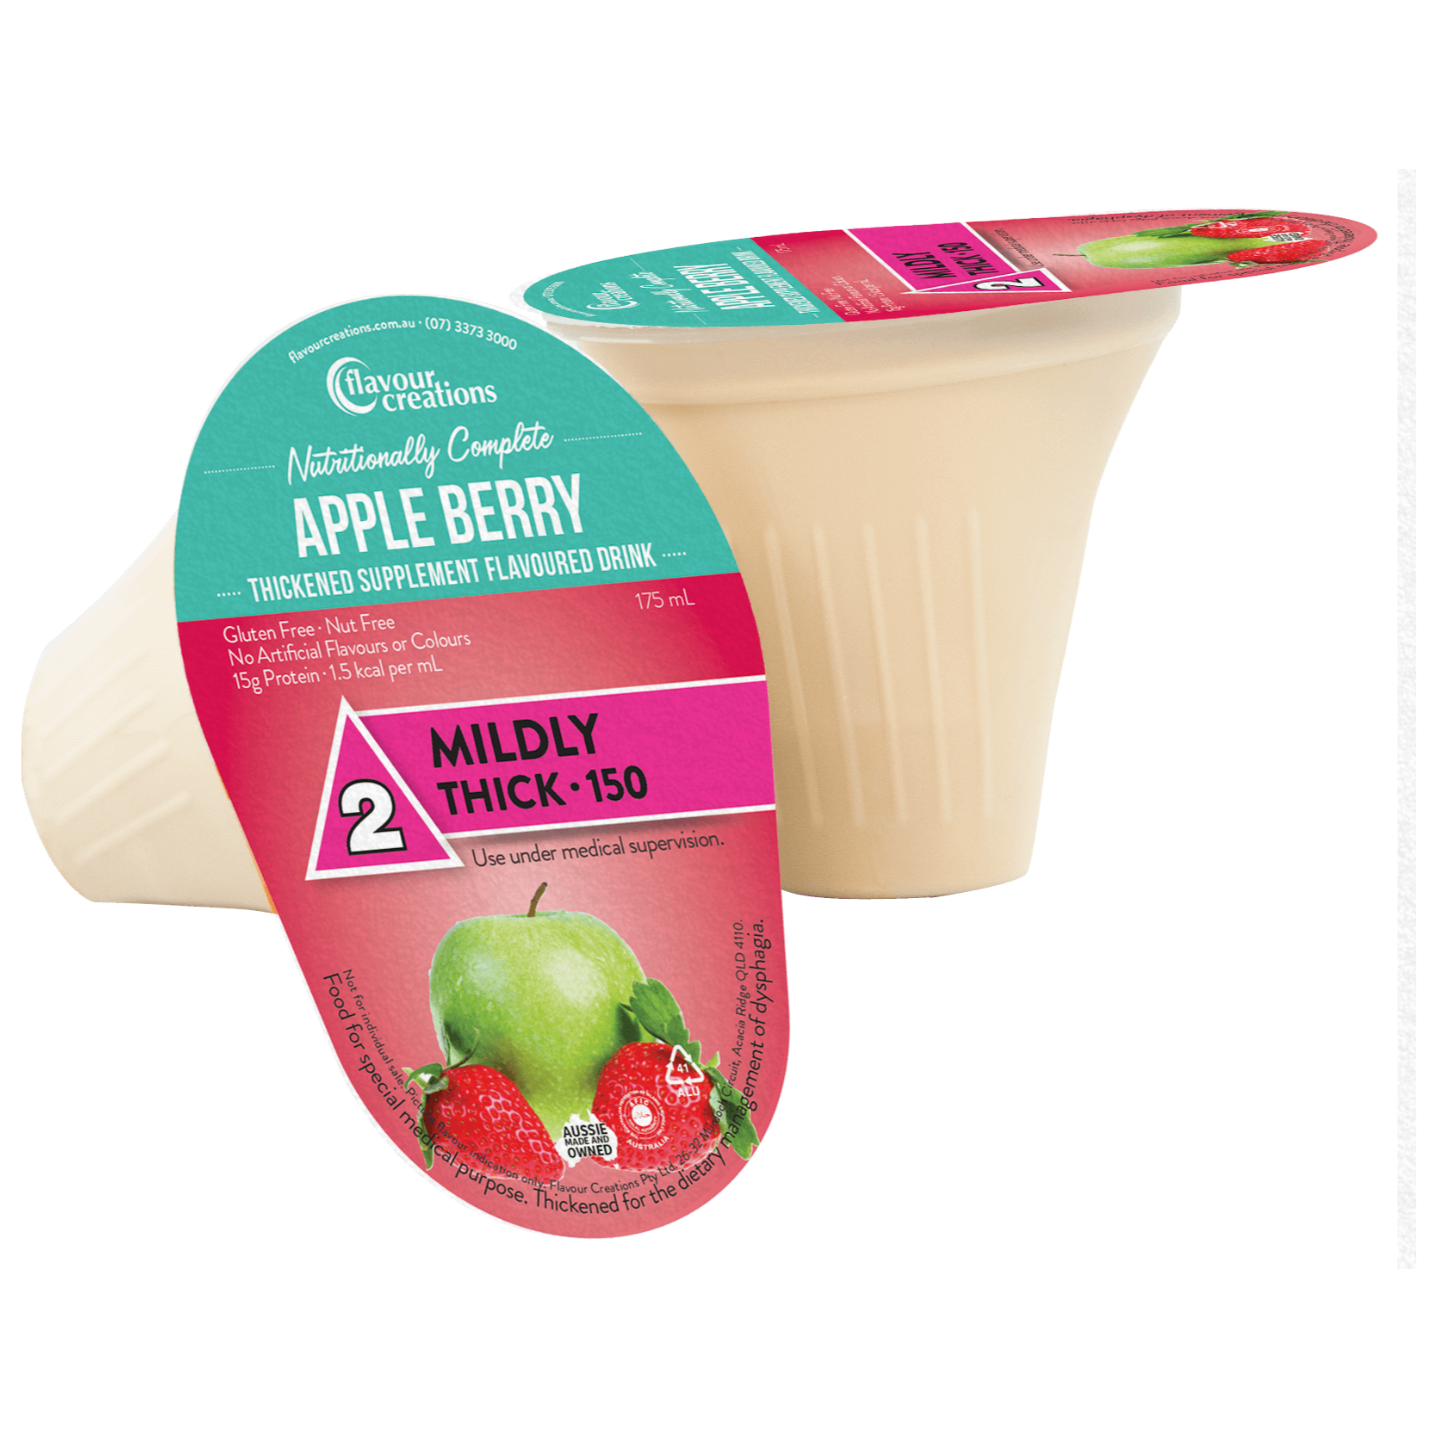 Nutritionally Complete Apple Berry Level 2 Mildly Thick 150